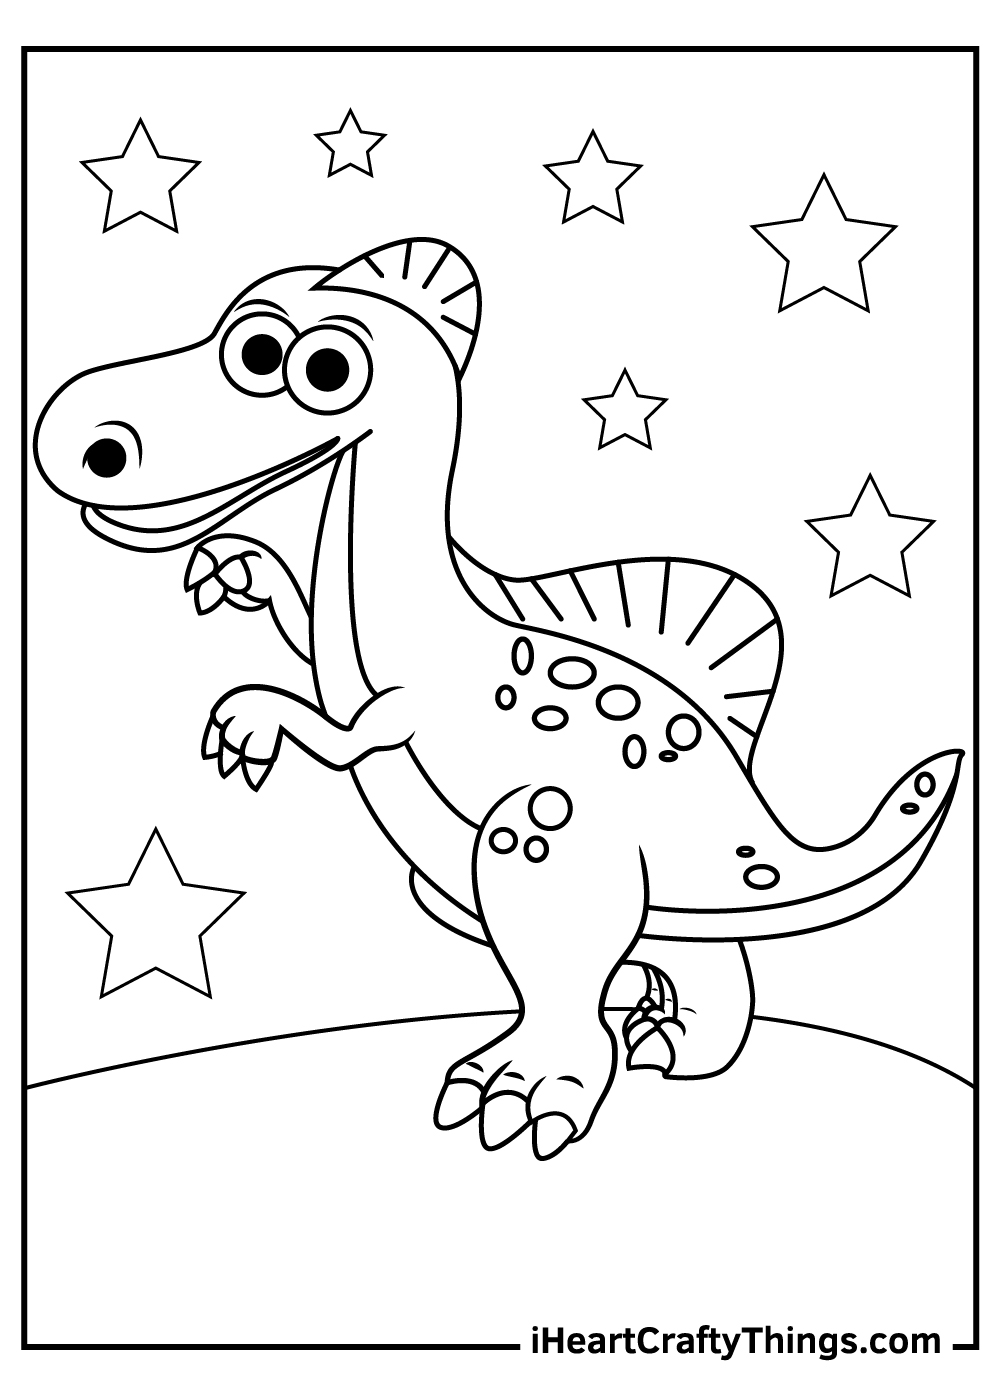 jurassic world spinosaurus coloring pages free printable